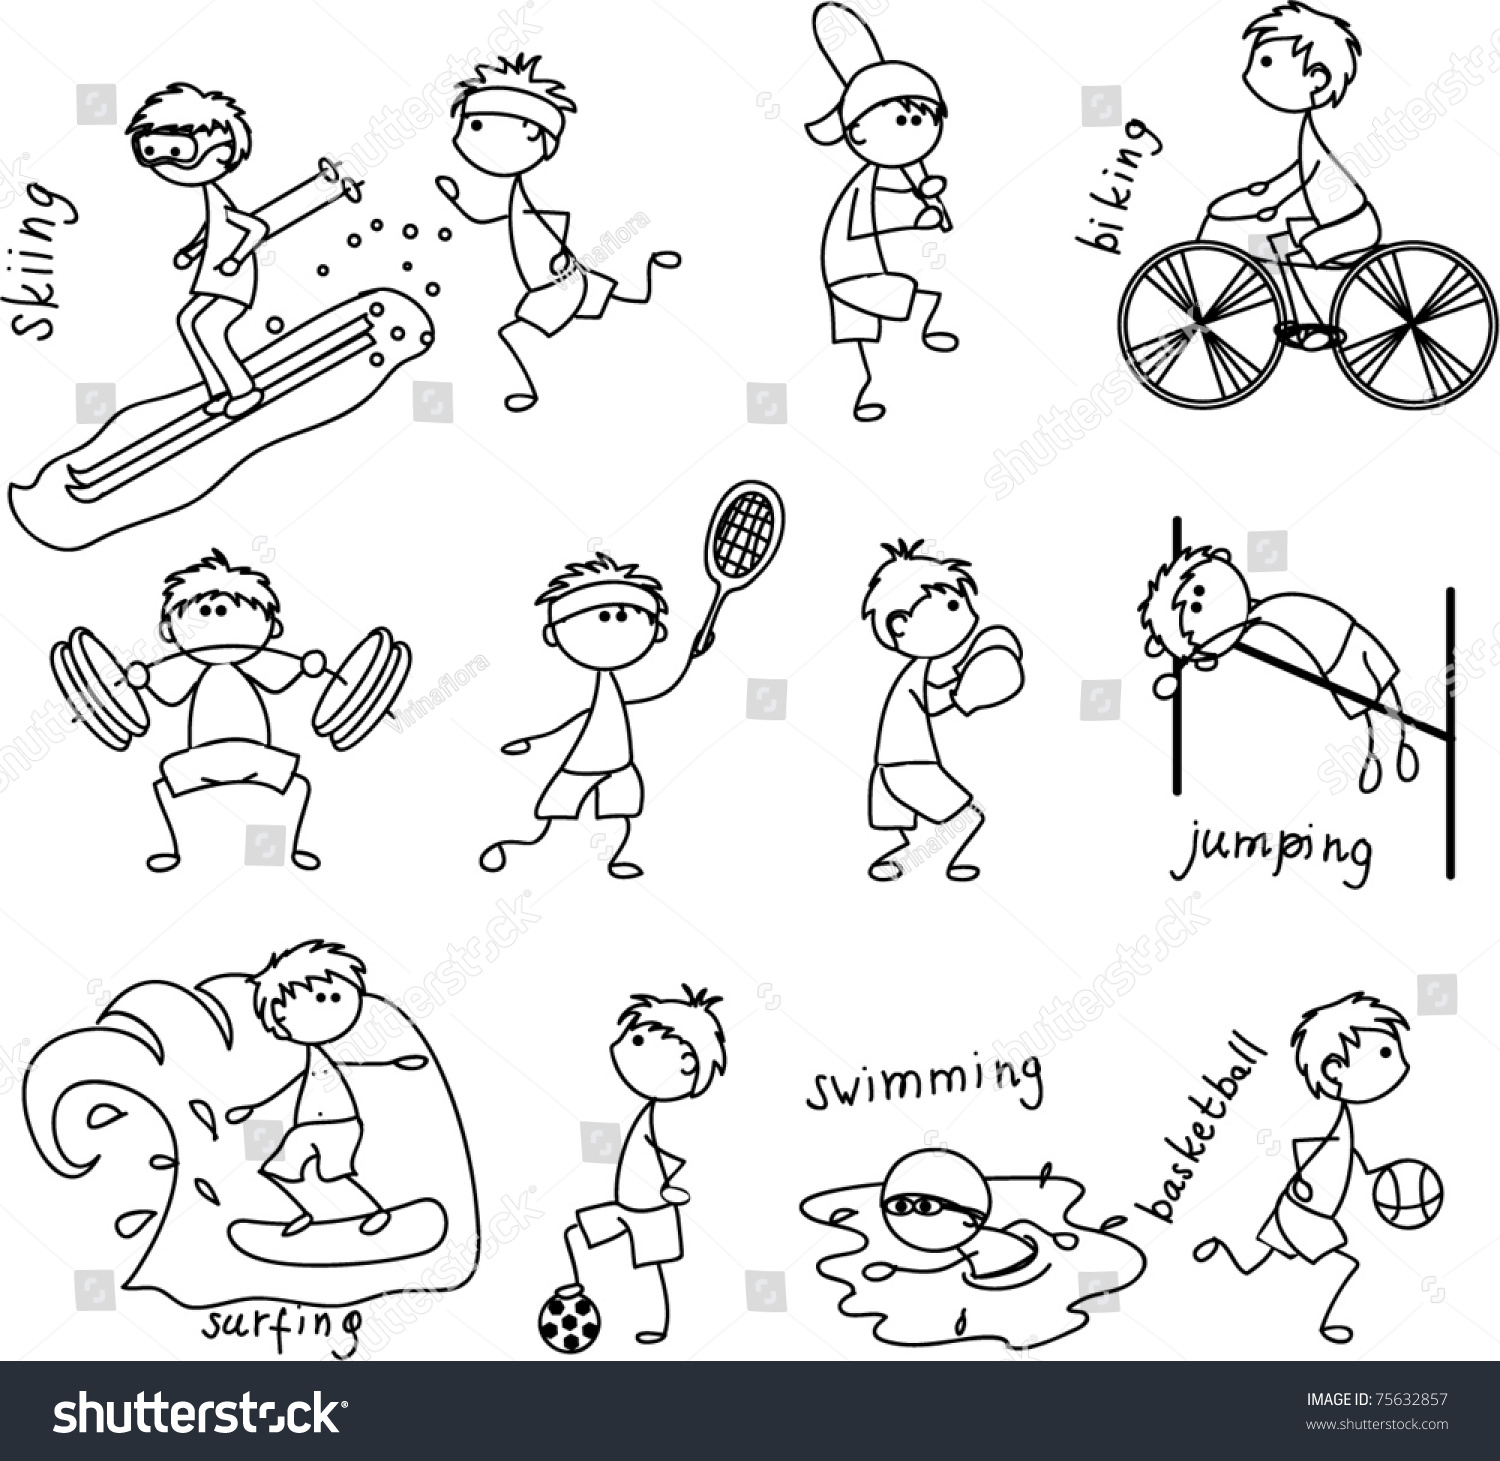 cartoon sport icon black white coloring stock vector 75632857 shutterstock. Black Bedroom Furniture Sets. Home Design Ideas